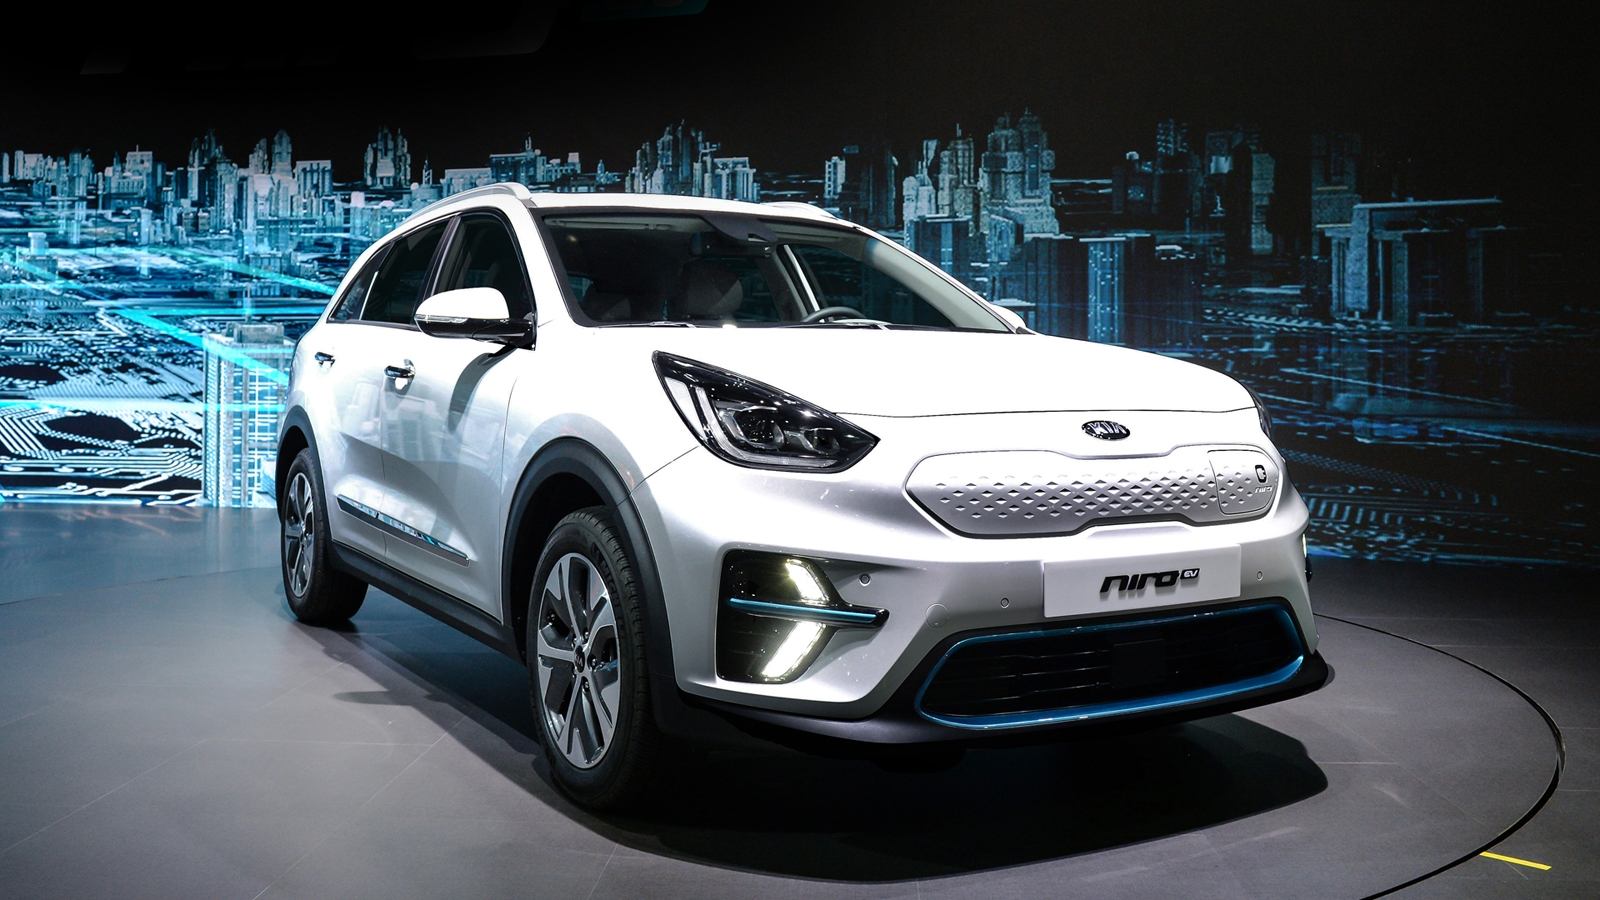 production kia niro ev shown in busan news. Black Bedroom Furniture Sets. Home Design Ideas